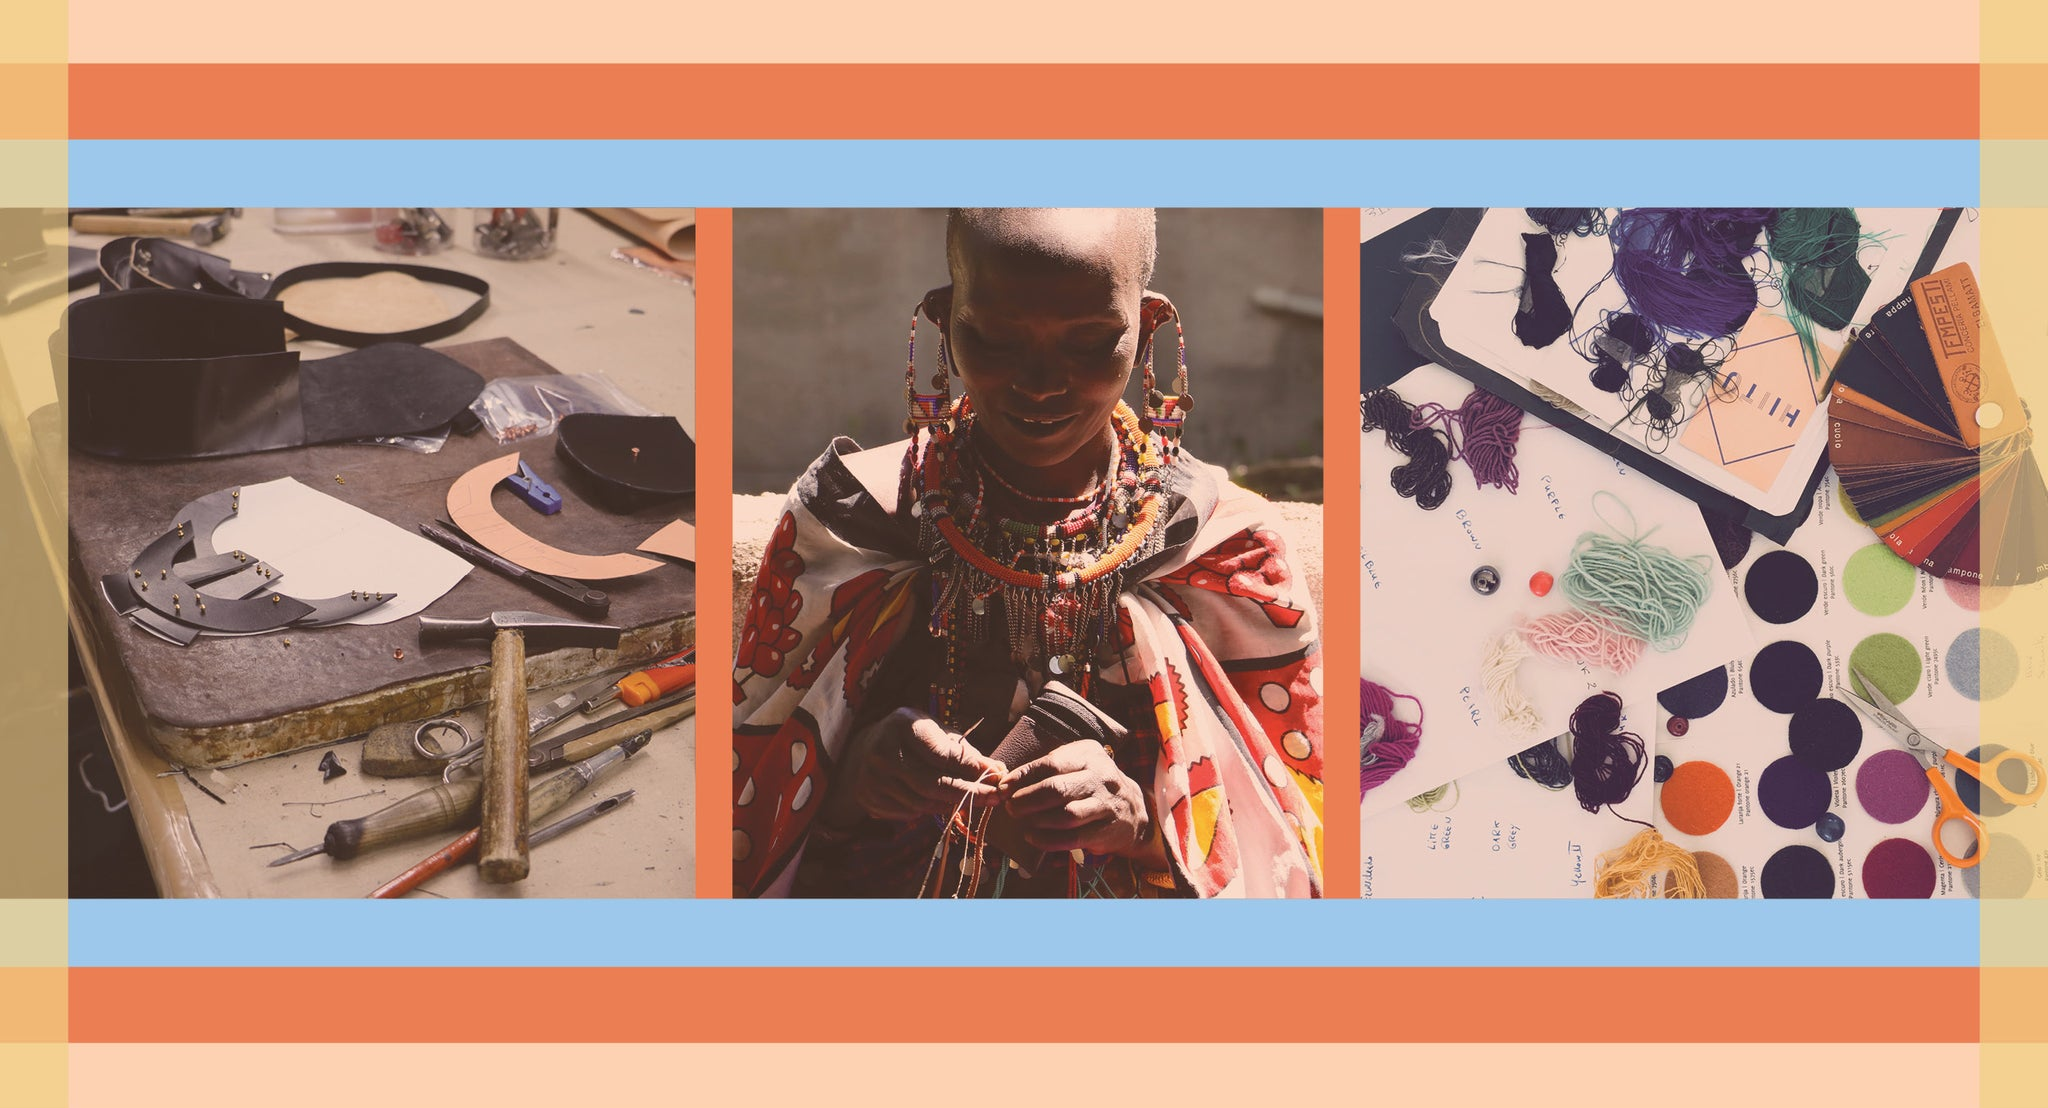 The HIITU all things handmade onlineshop, with shoulder bags, pearl earrings, fancy rings, african art and other indie style accessories for an elegant hippie look.